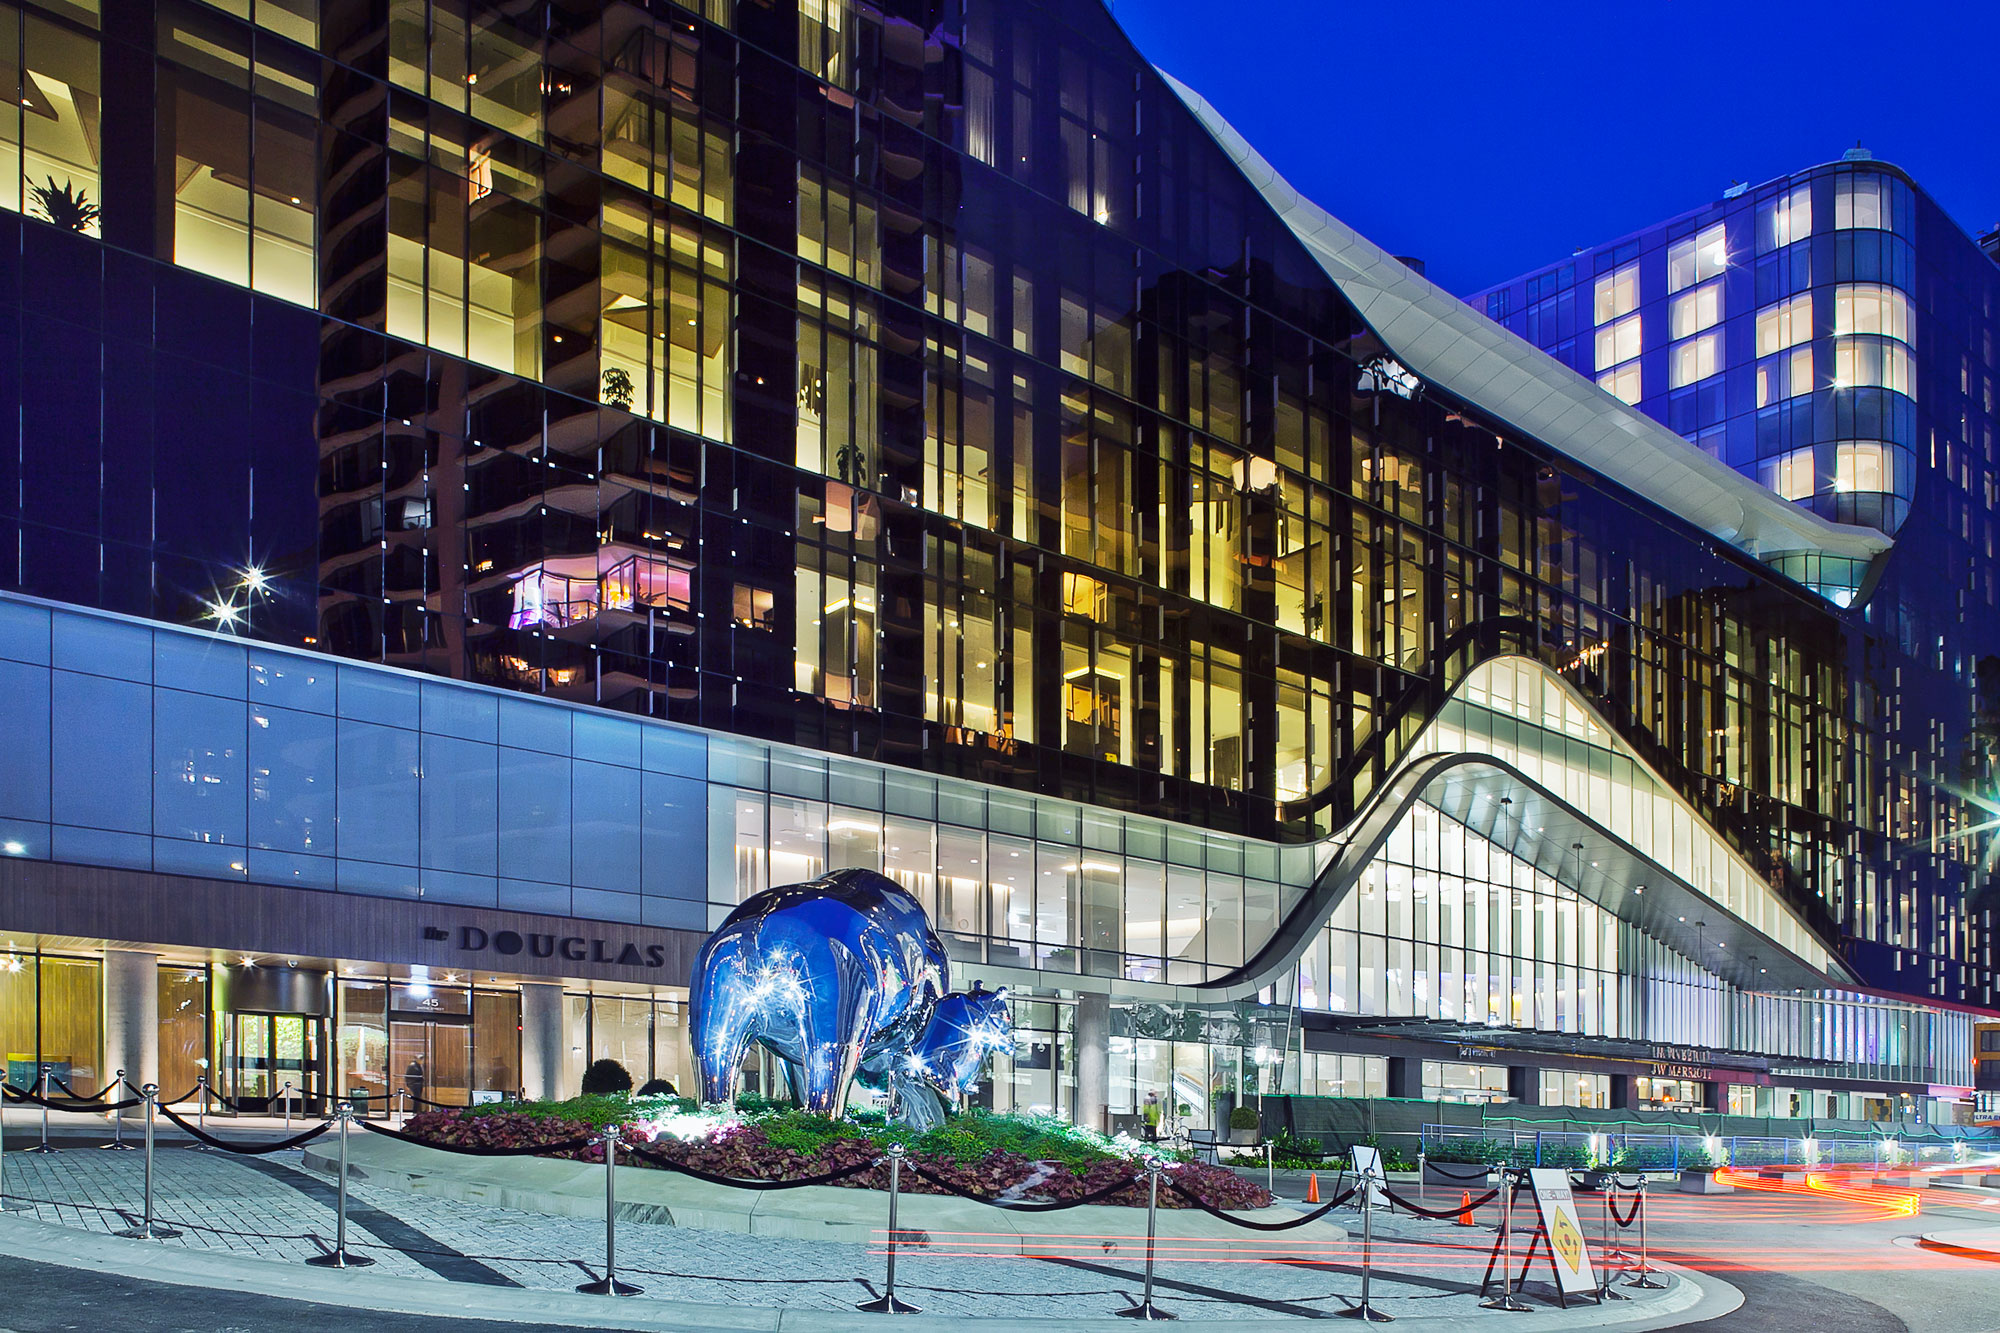 Parq Resort Casino Vancouver, IBI Group, Keith Panel Systems, Alucobond ACM, Photography Robert Stefanowicz